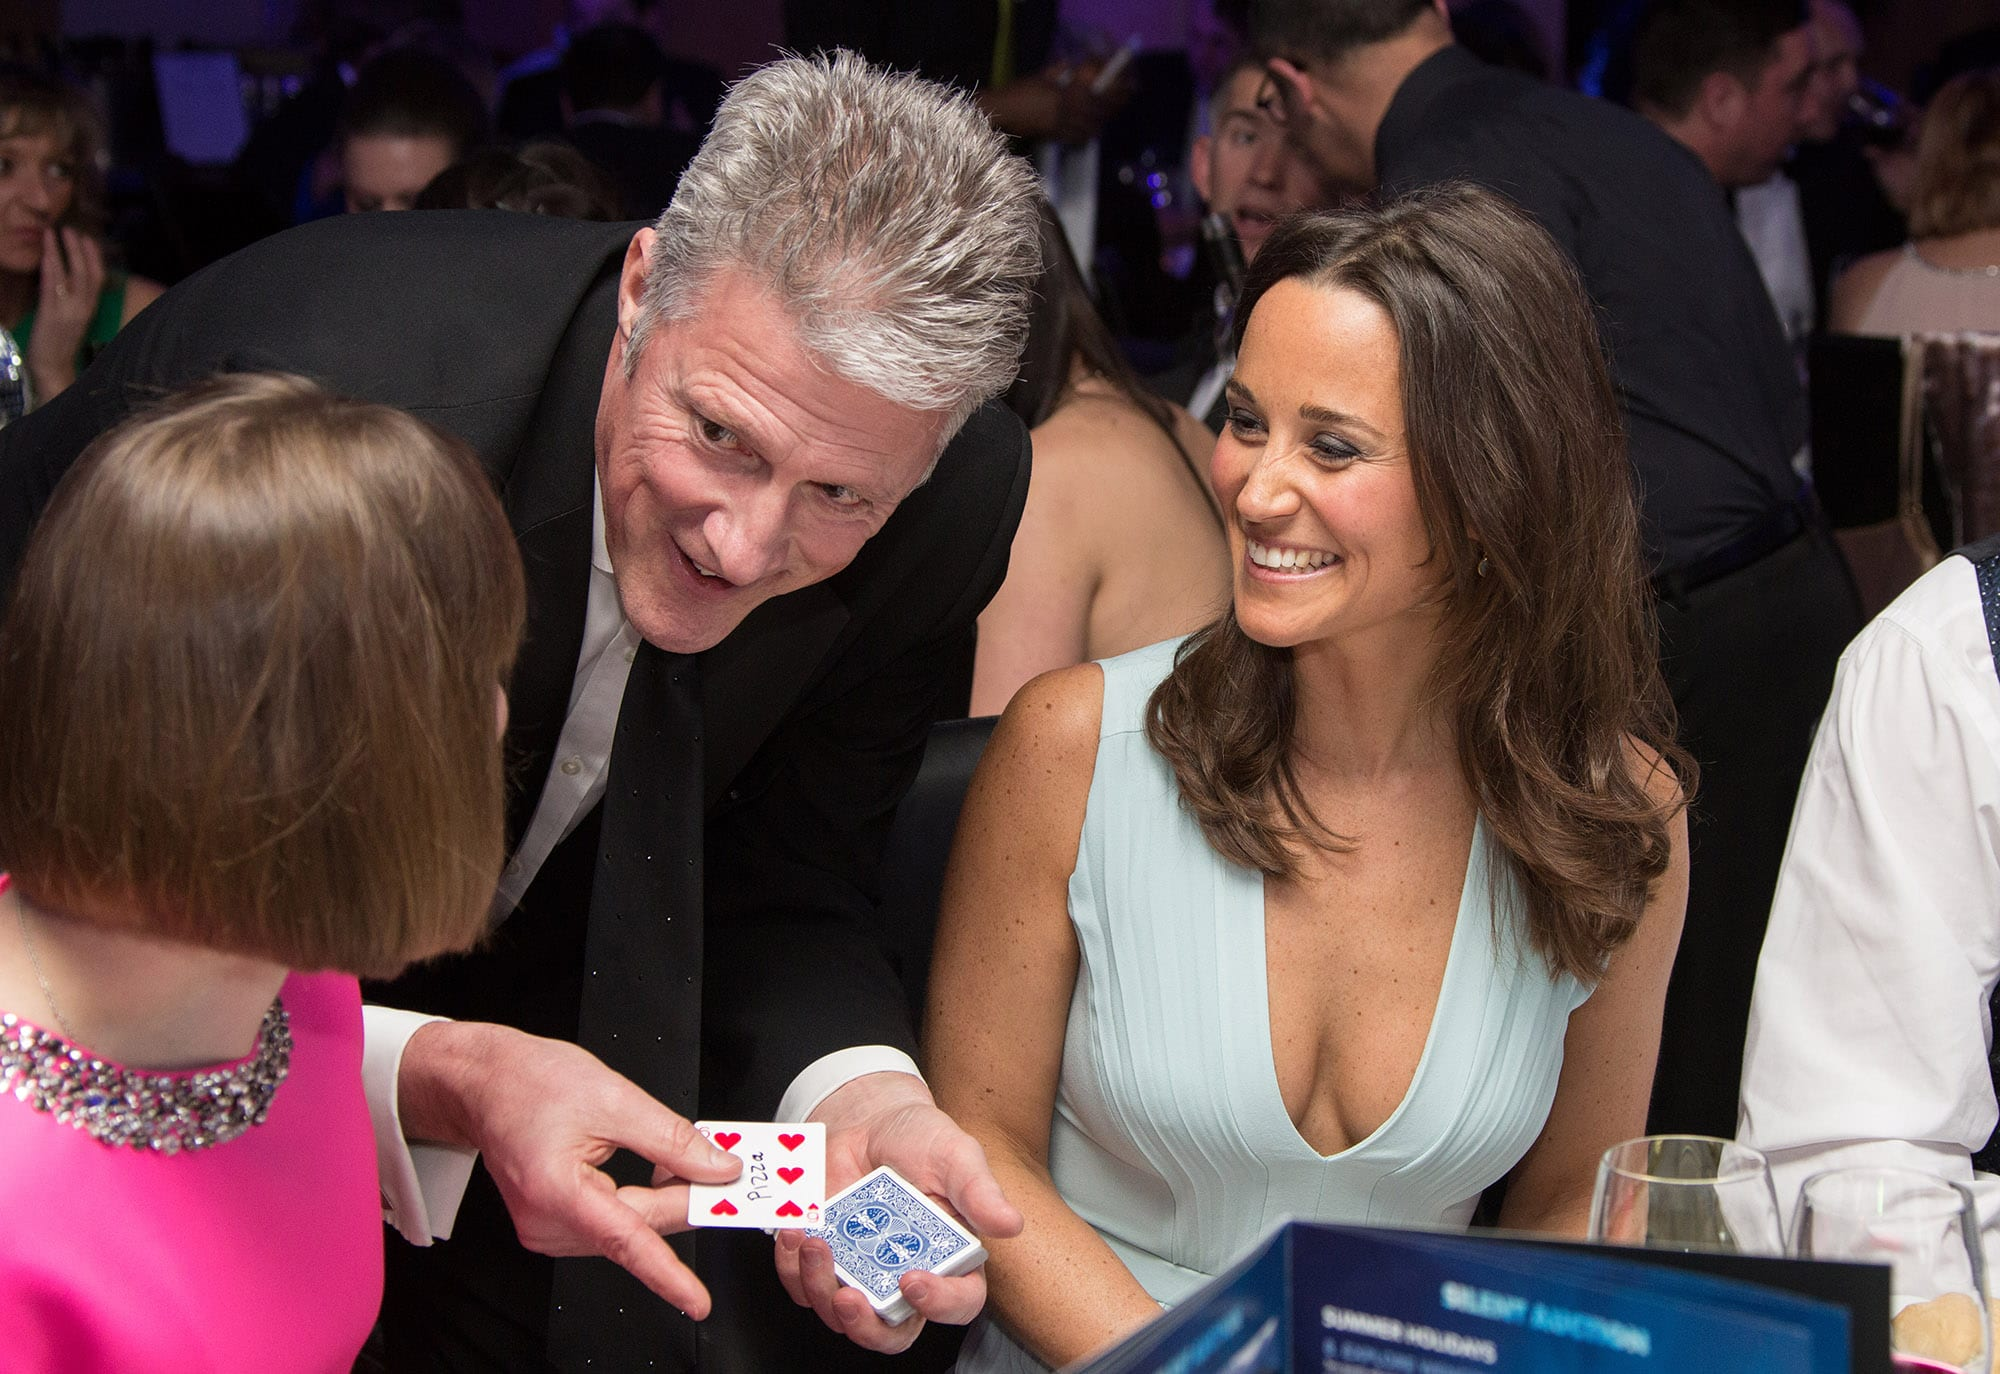 David Redfearn Magician & Pippa Middleton